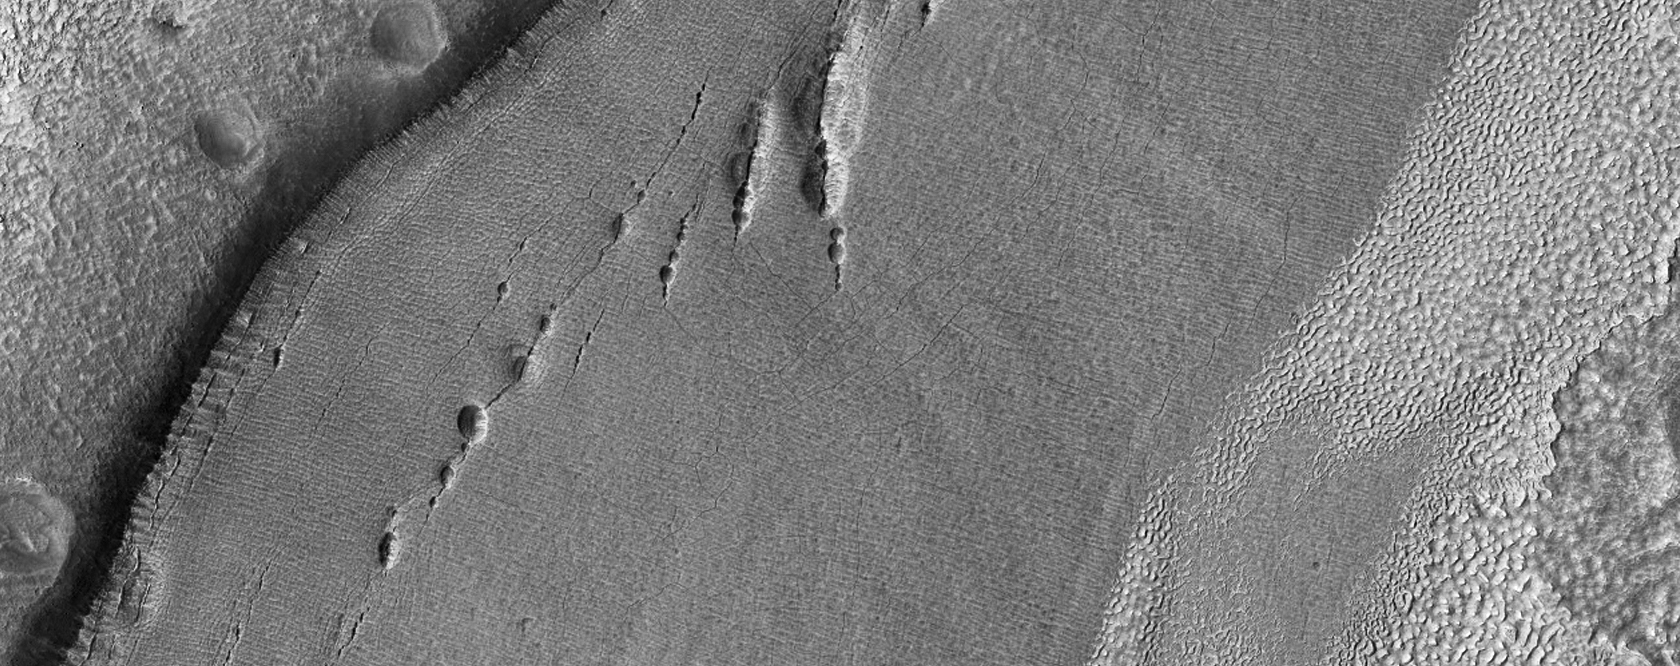 Pits along Fractures in Crater Floor Material